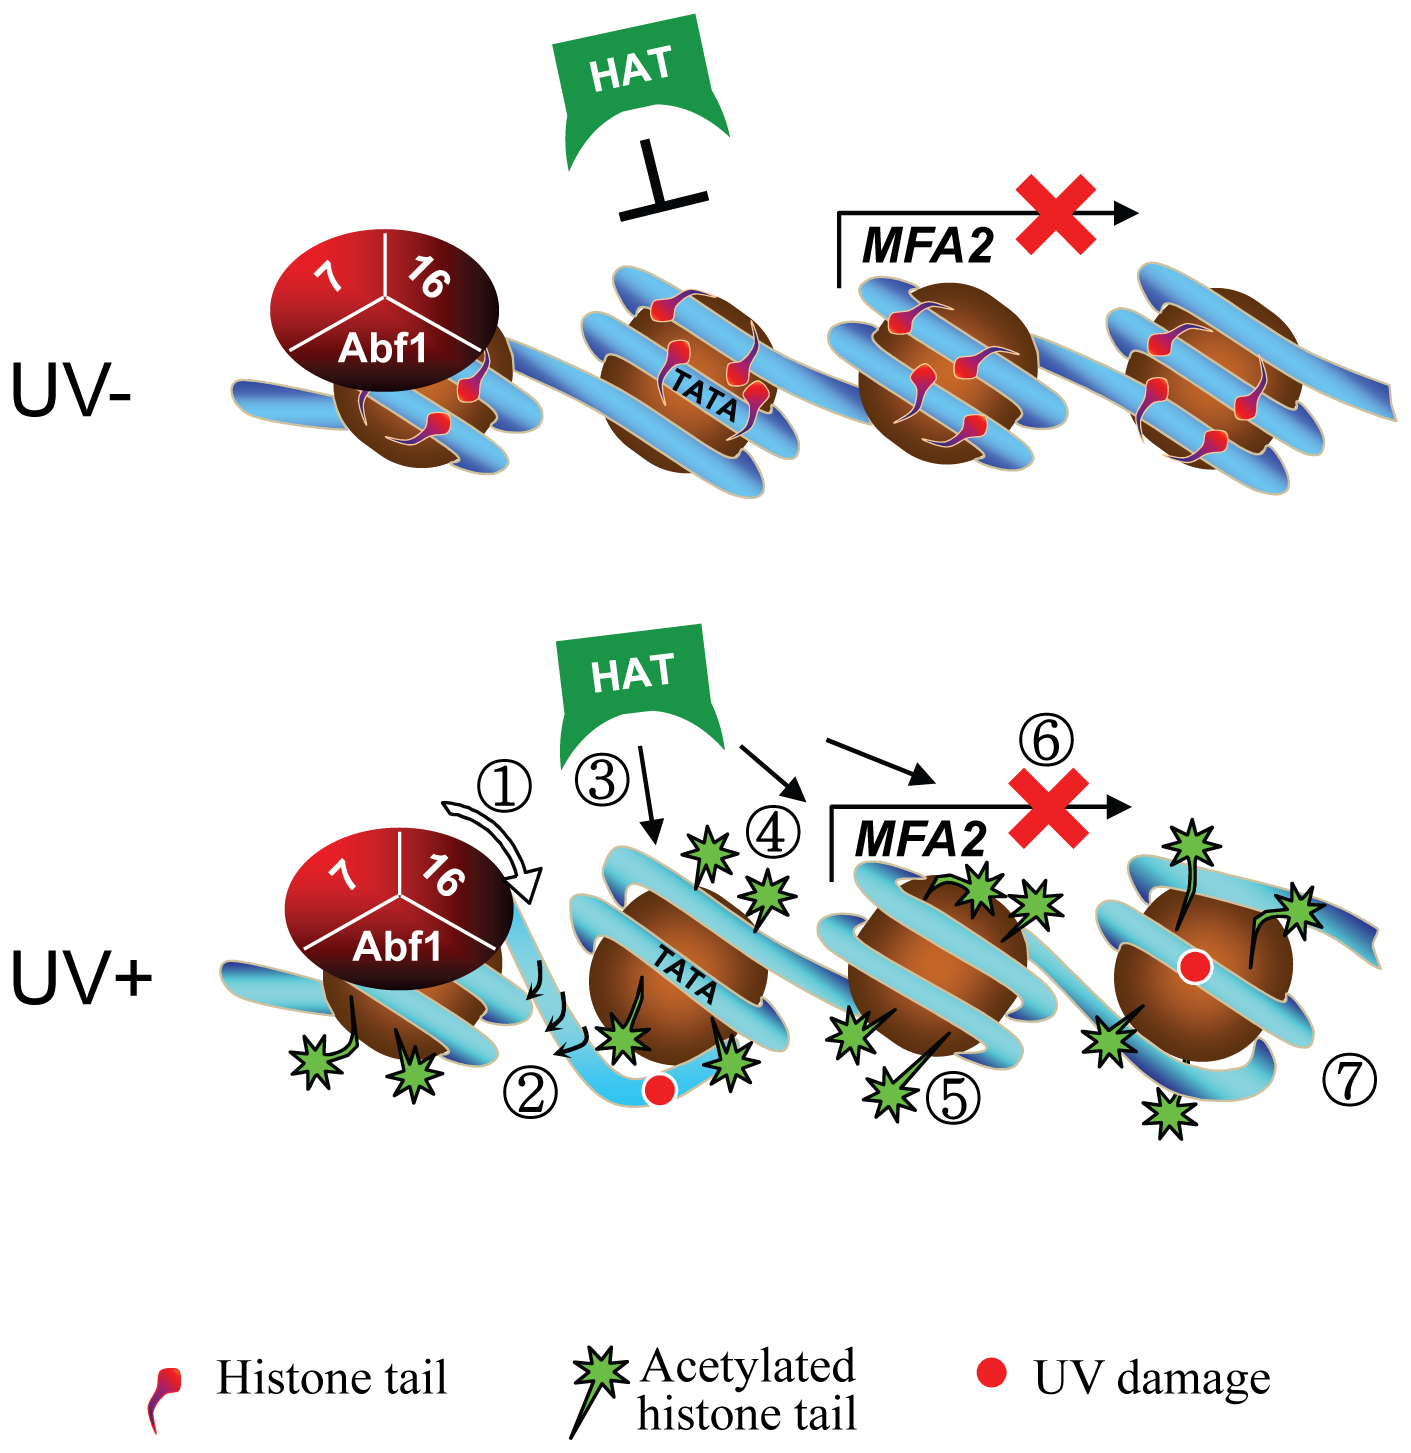 Model for UV-induced chromatin remodeling during GG-NER.